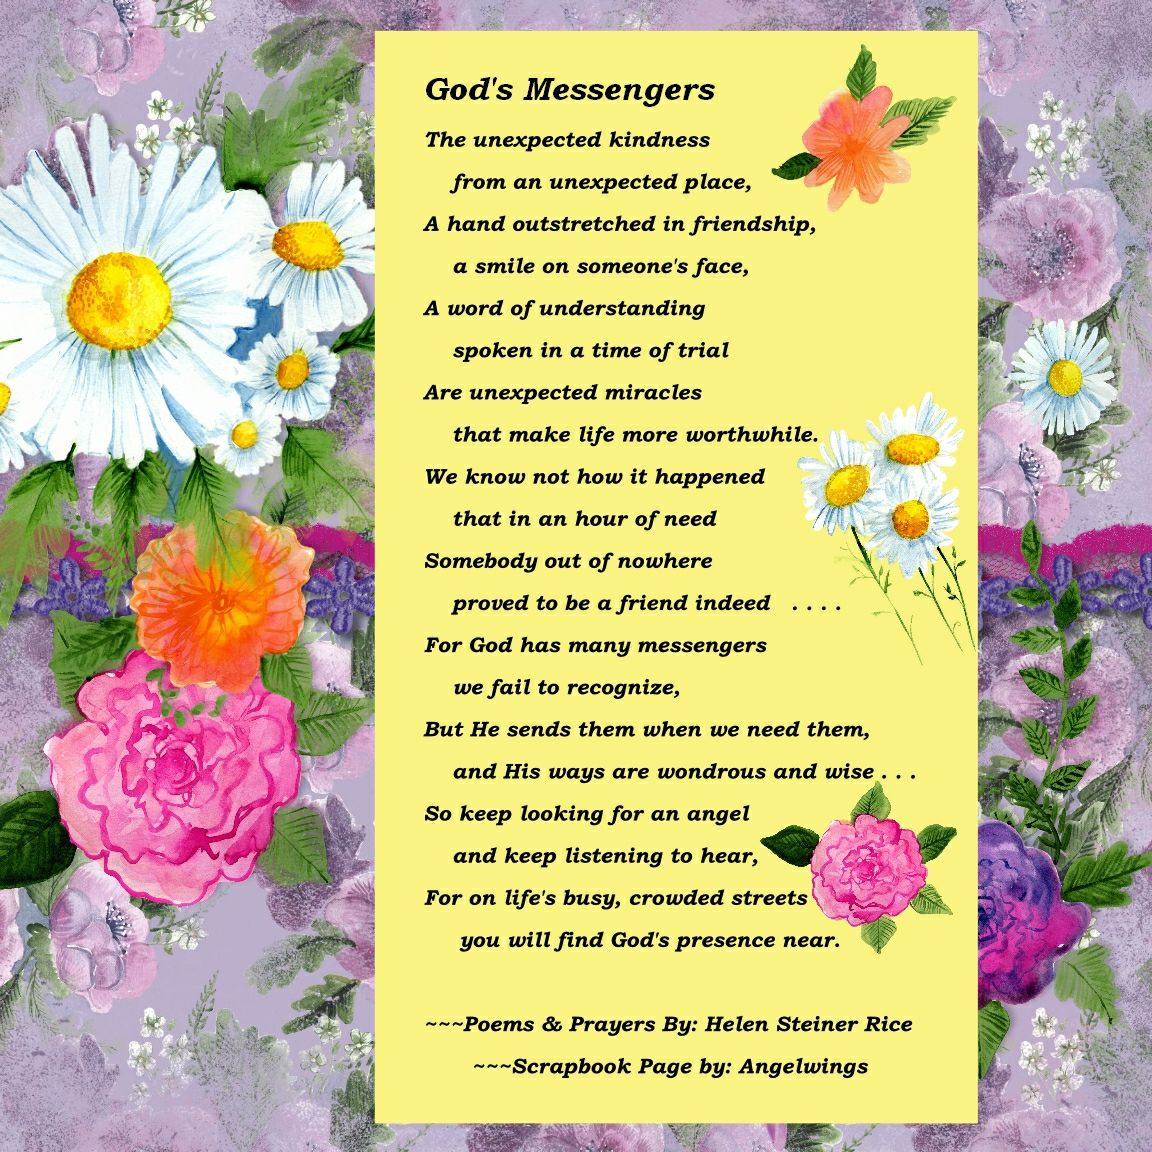 God's Messengers by Helen Steiner Rice, Scrapbook by Angelwings